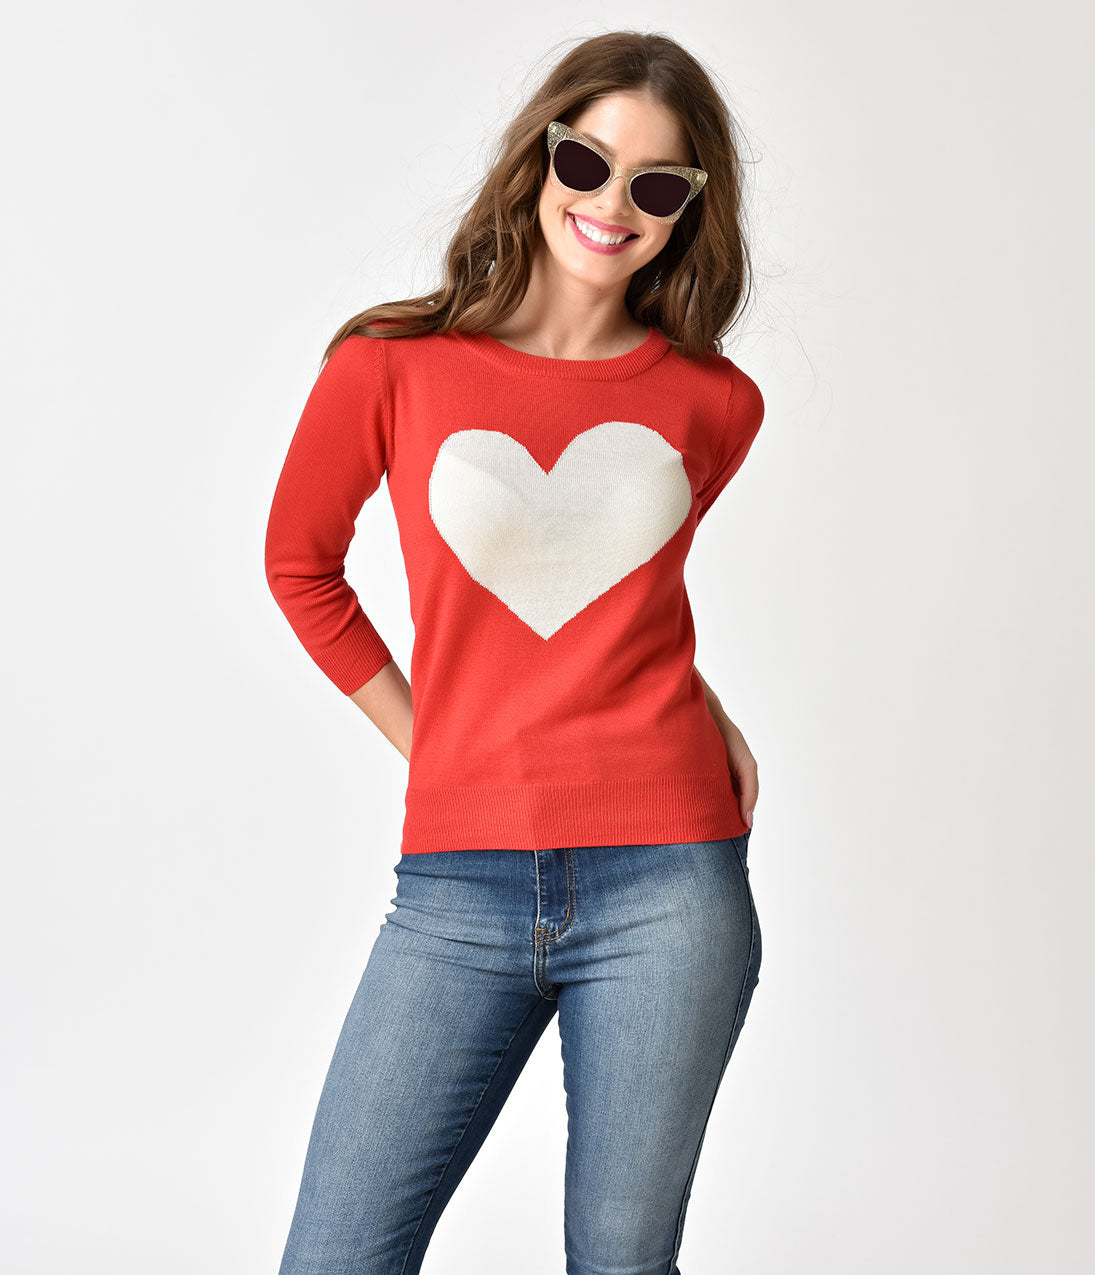 Vintage Sweaters: Cable Knit, Fair Isle Cardigans & Sweaters Tomato Red  Oatmeal Heart Long Sleeve Knit Sweater Top $34.00 AT vintagedancer.com